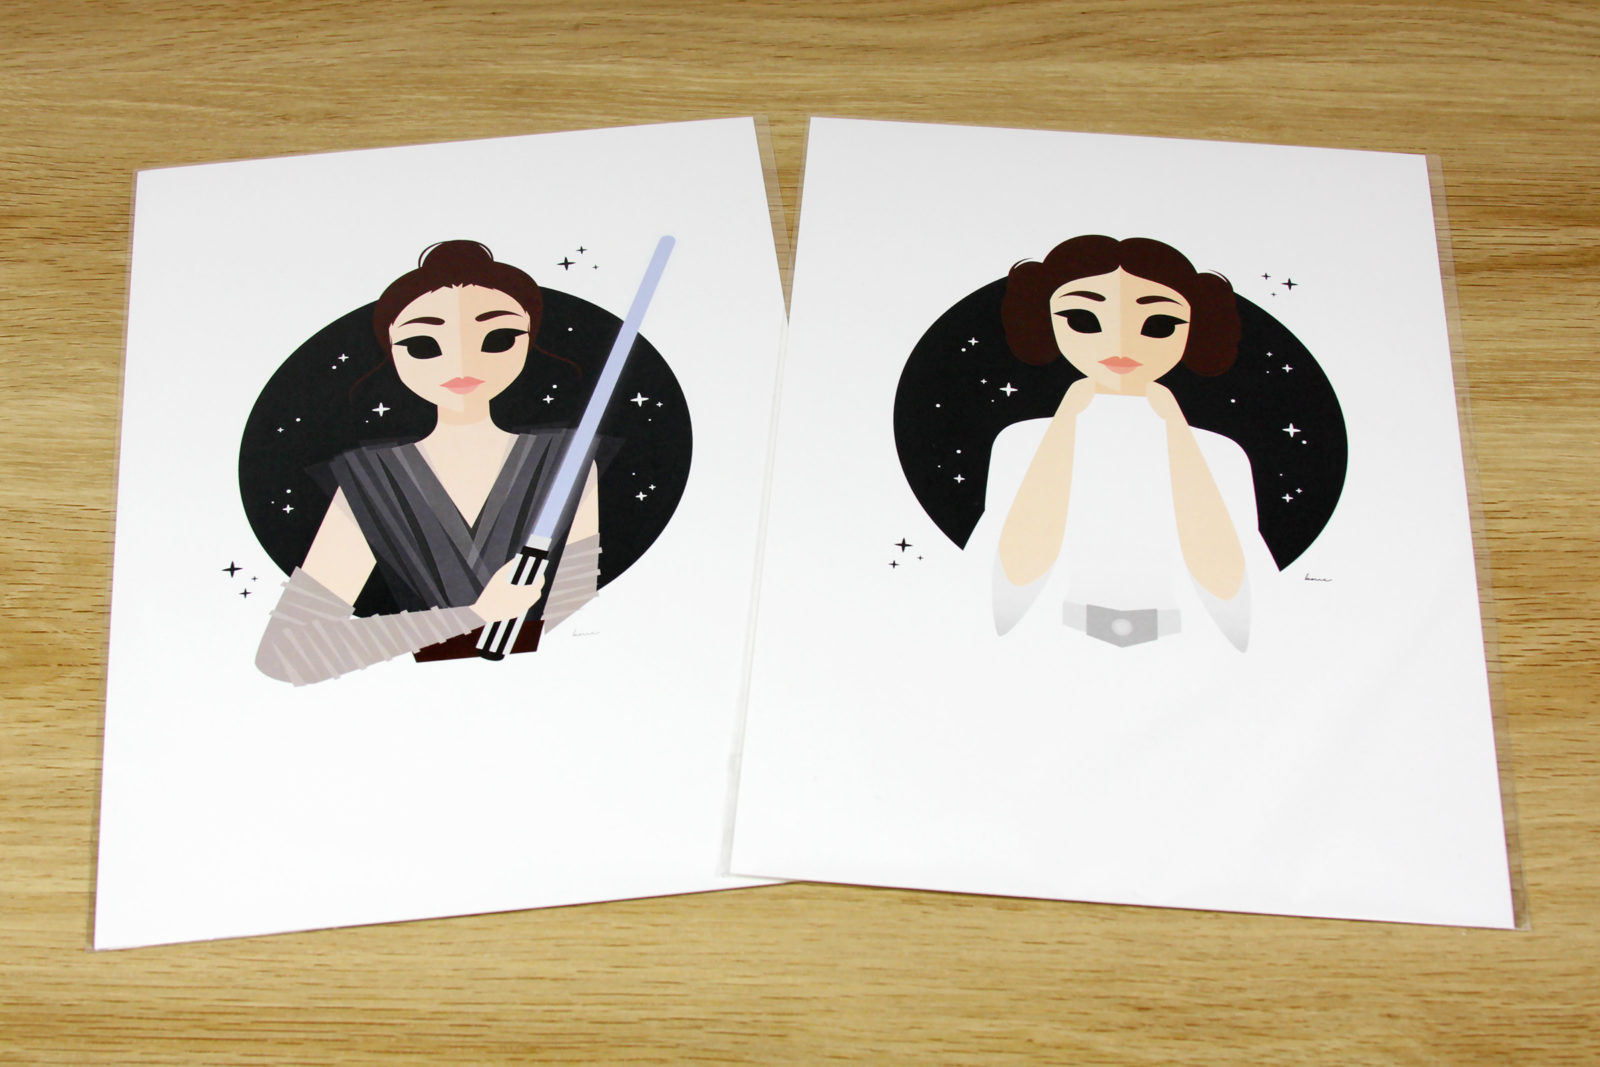 Star Wars Princess Leia and Rey Art Prints by Tee Turtle Princess Leia T-Shirt and Art Print by Kelly McMahon